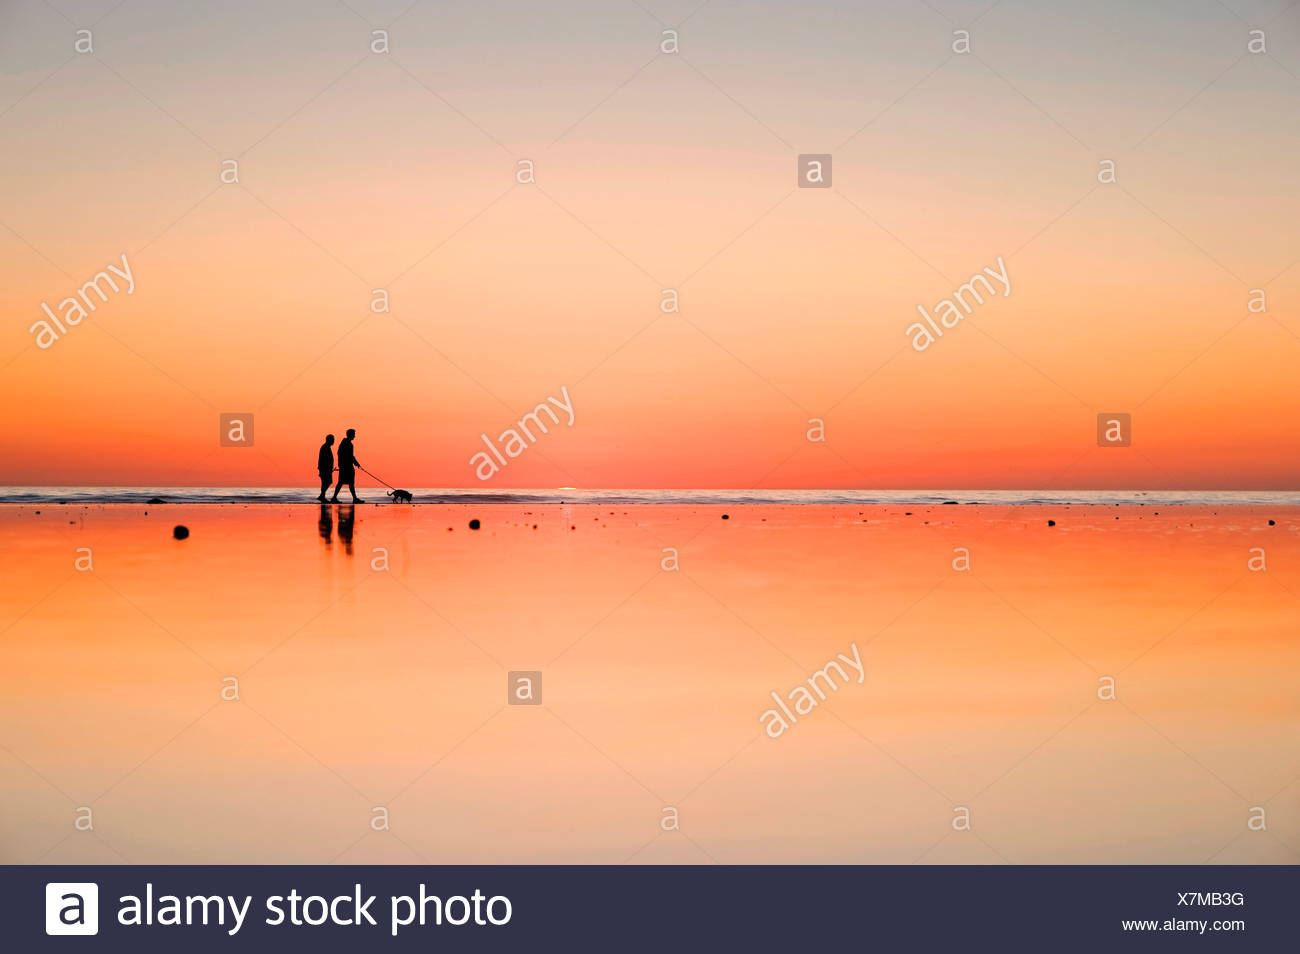 Silhouetted figures walk their dog on wet sand beside the ocean at sunset. - Stock Image